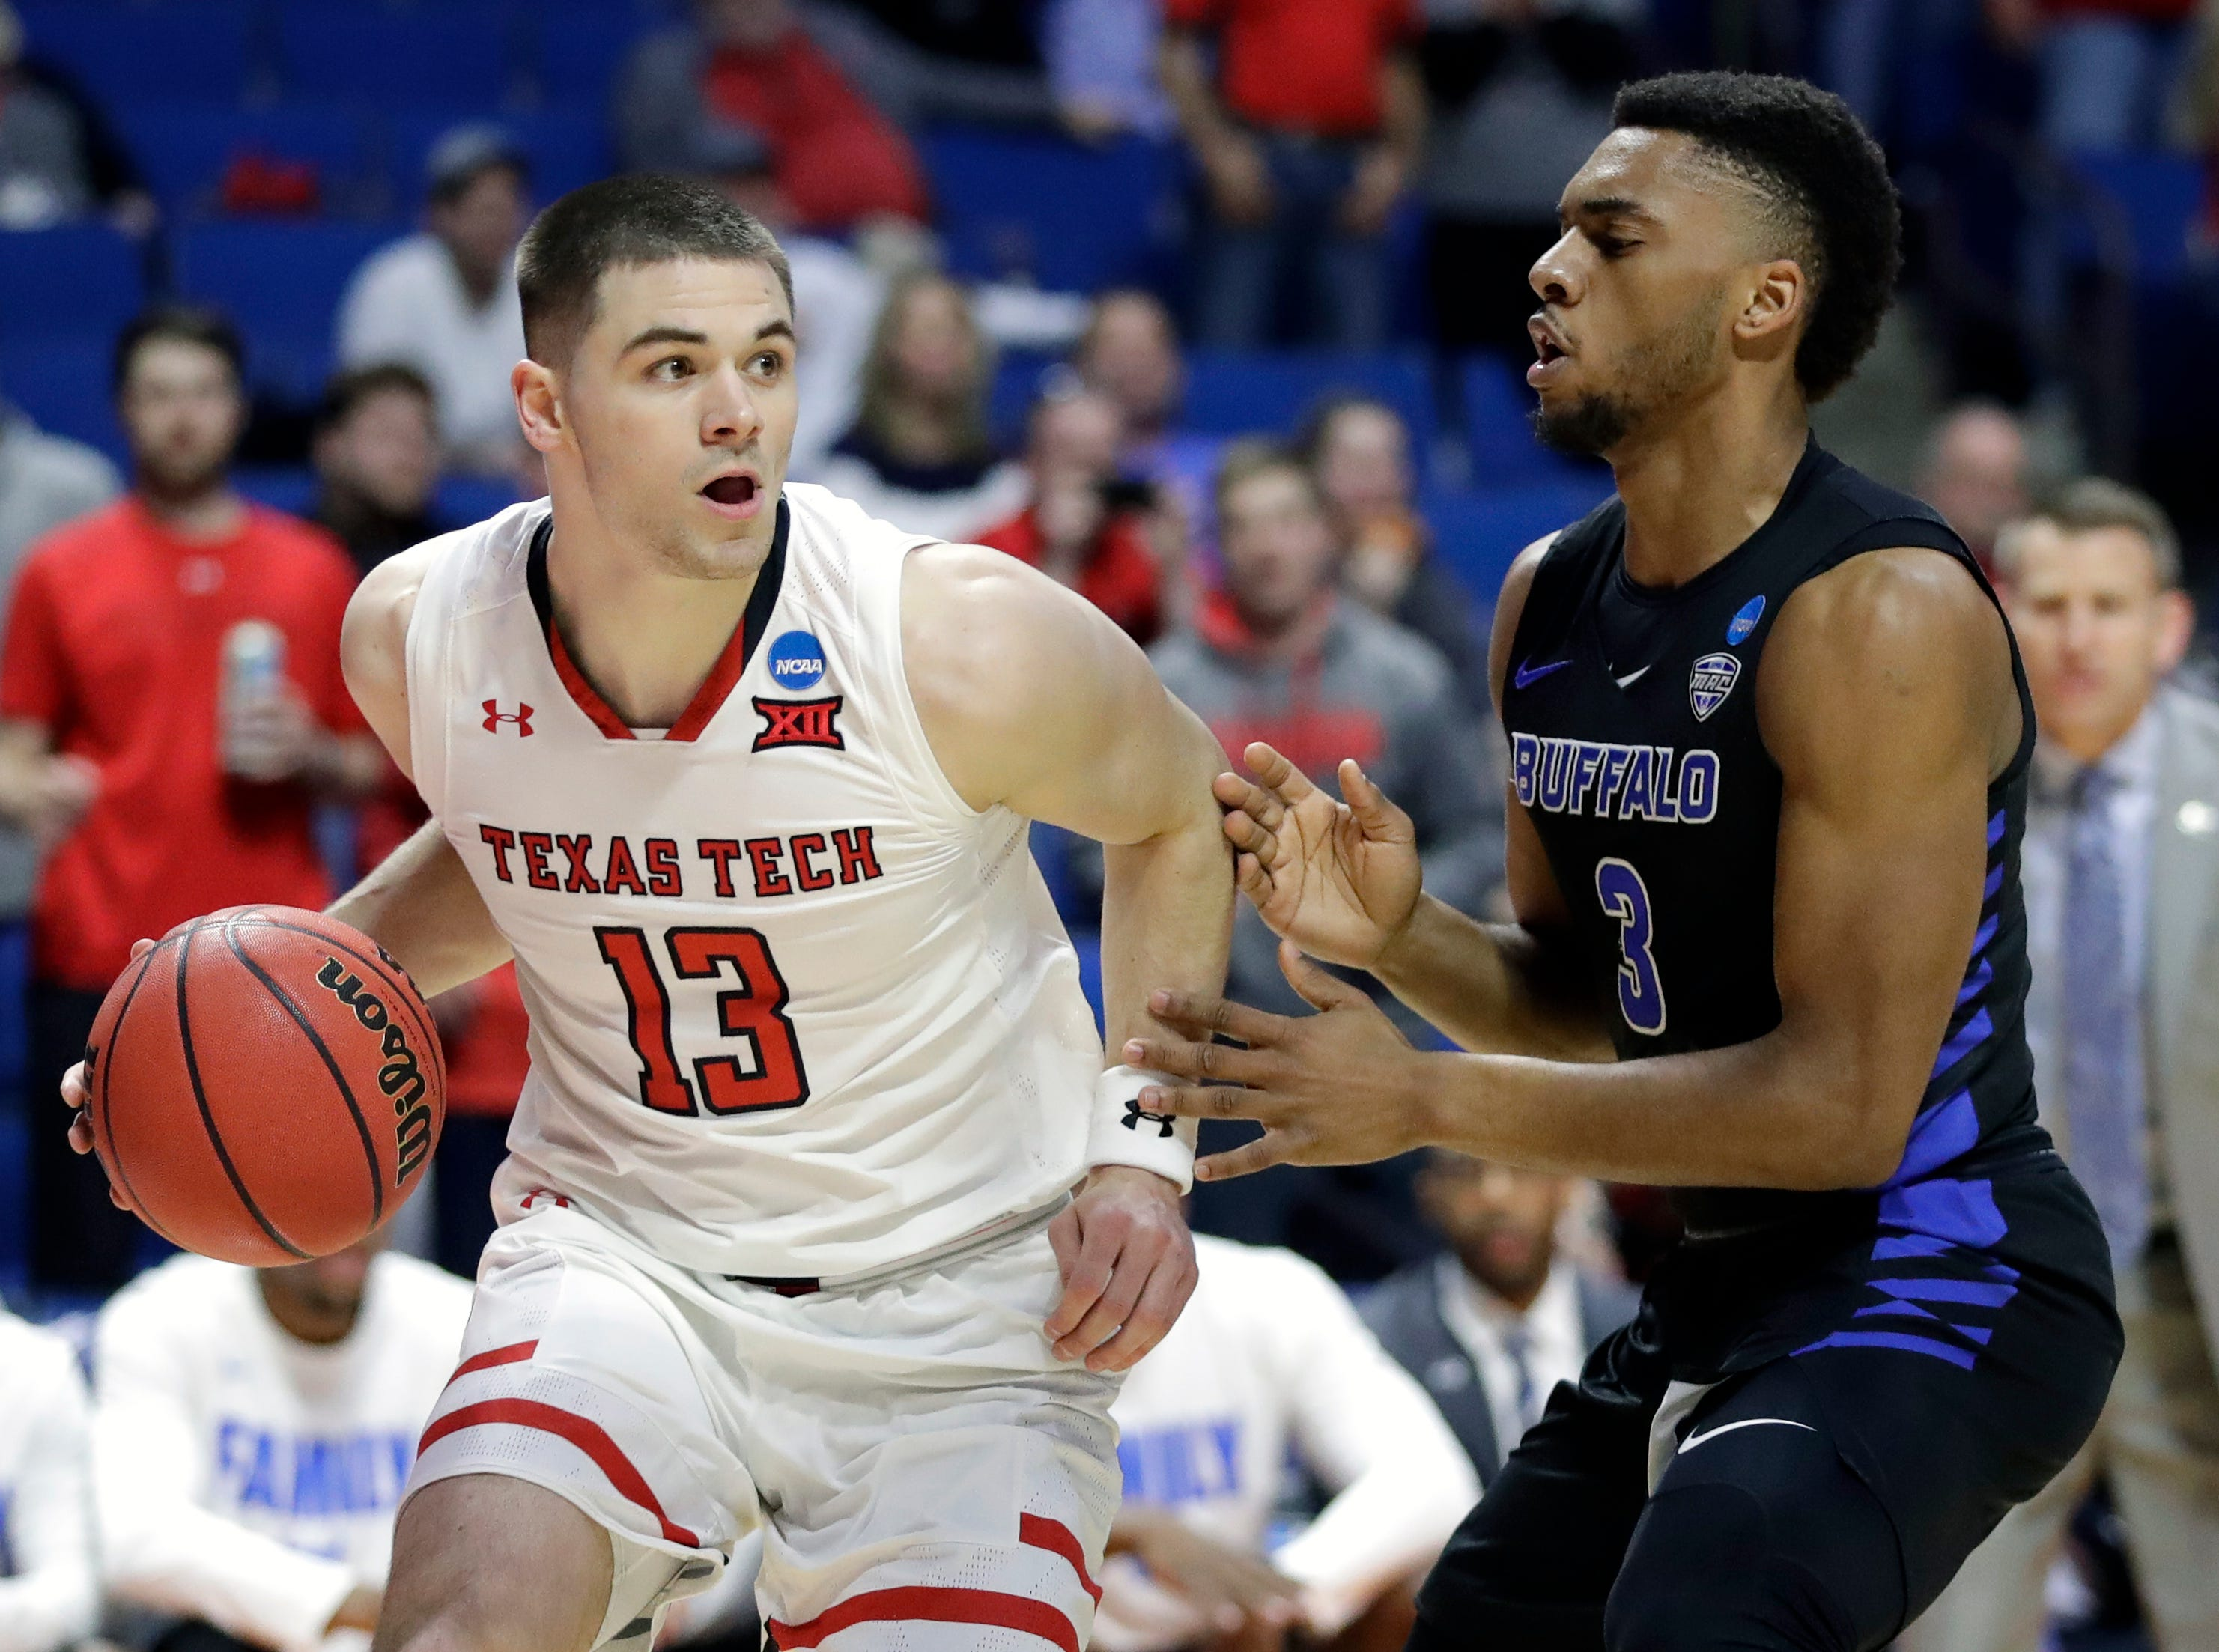 Texas Tech's Matt Mooney (13) drives around Buffalo's Jayvon Graves during the first half of a second round men's college basketball game in the NCAA Tournament Sunday, March 24, 2019, in Tulsa, Okla. (AP Photo/Jeff Roberson)